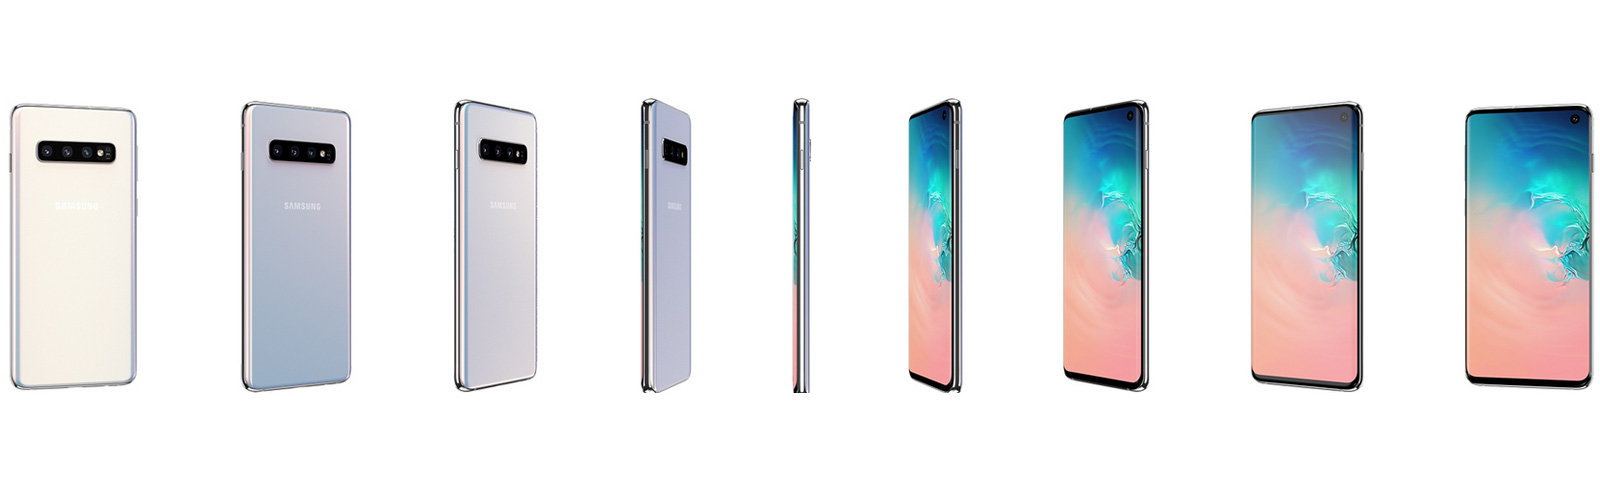 Samsung Galaxy S10 Exynos Review